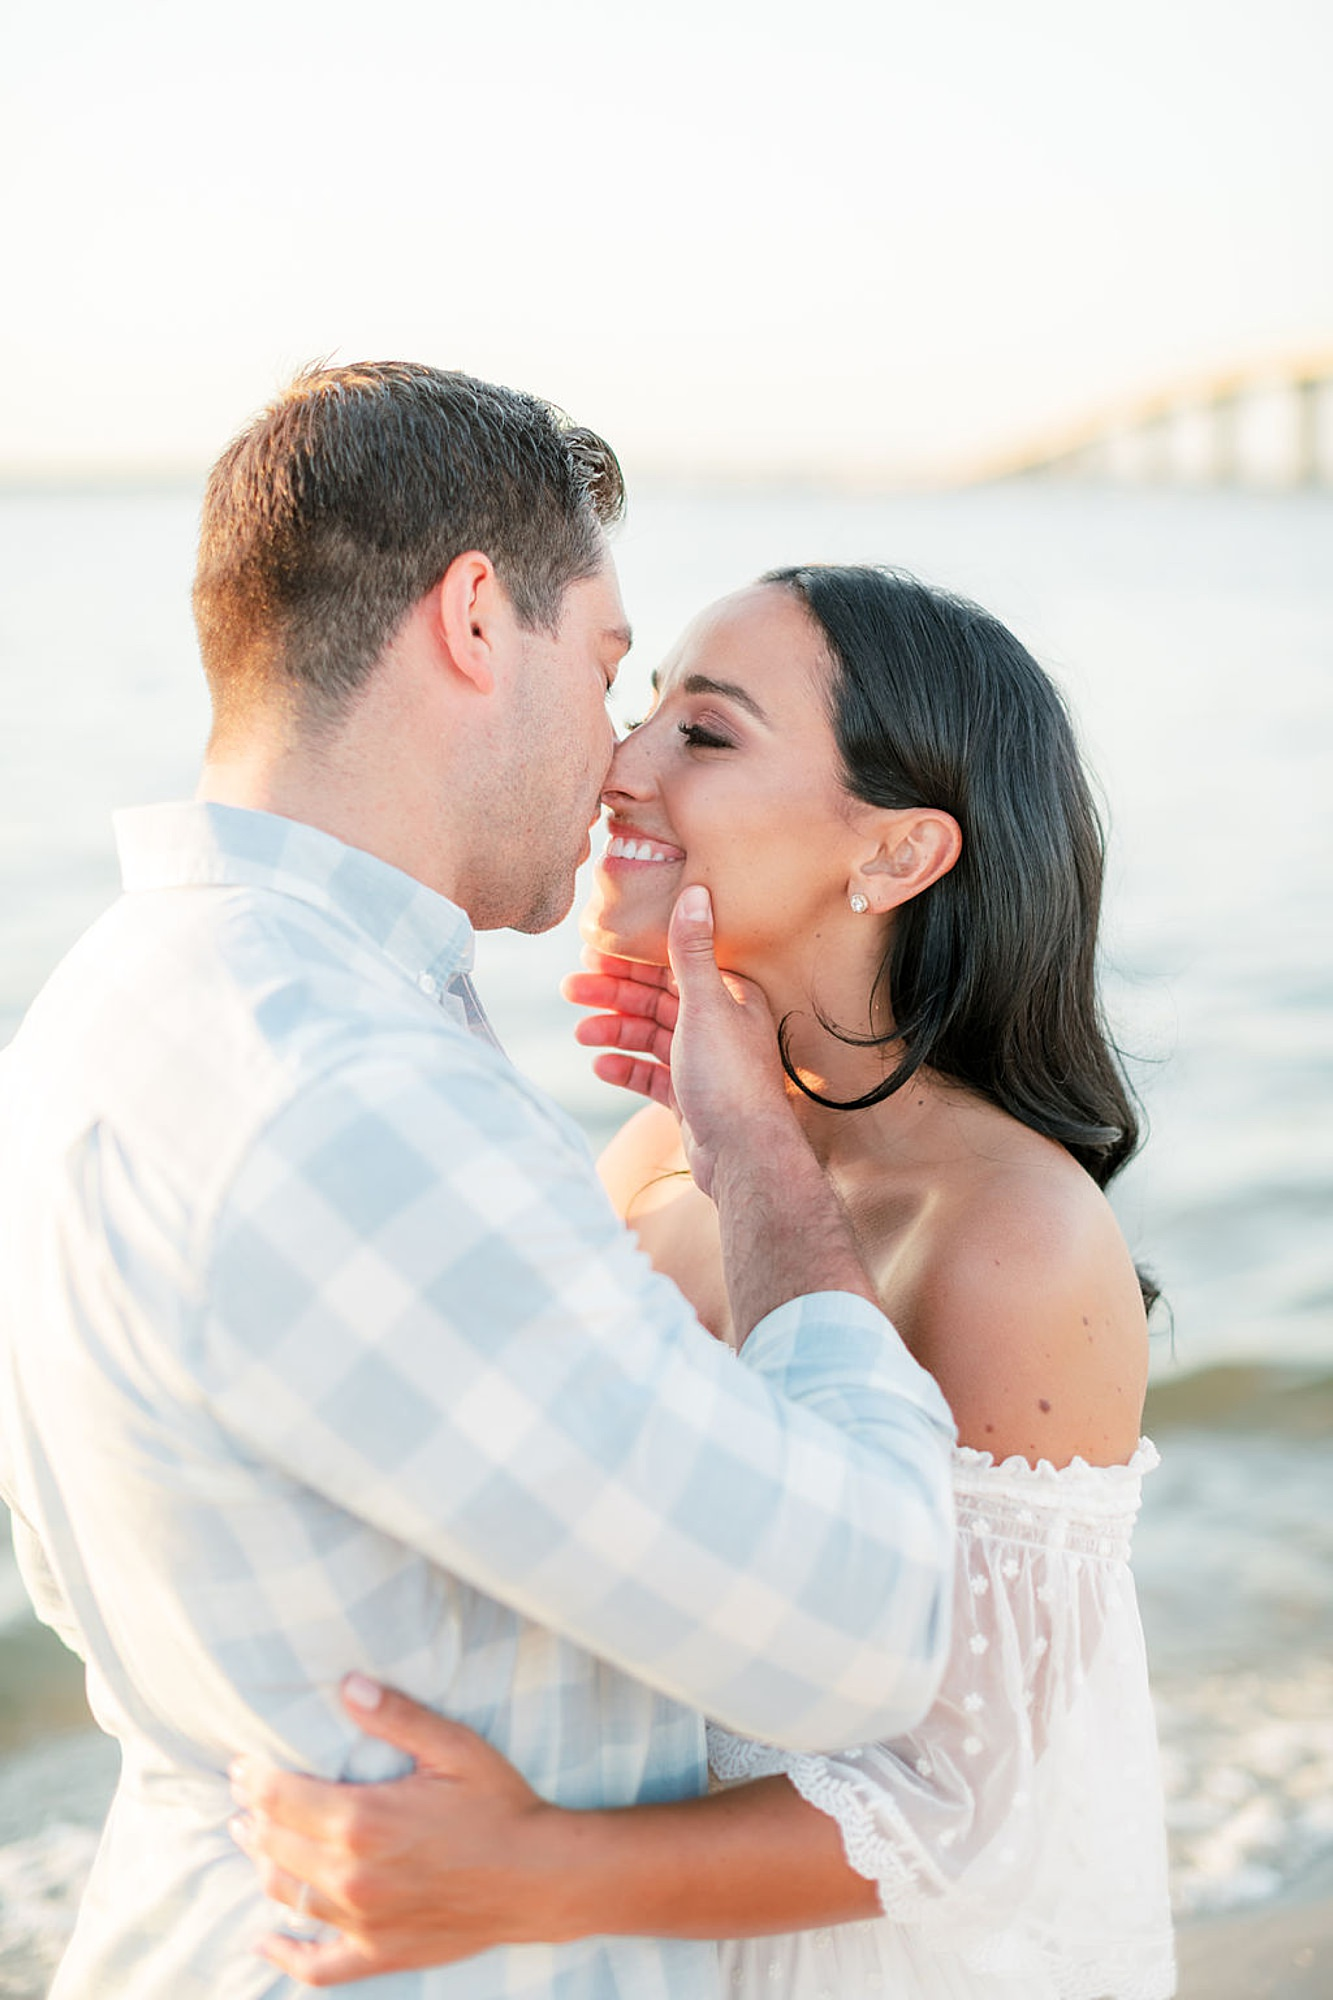 Airy and Bright Engagement Photography in Ocean City NJ by Magdalena Studios 0028